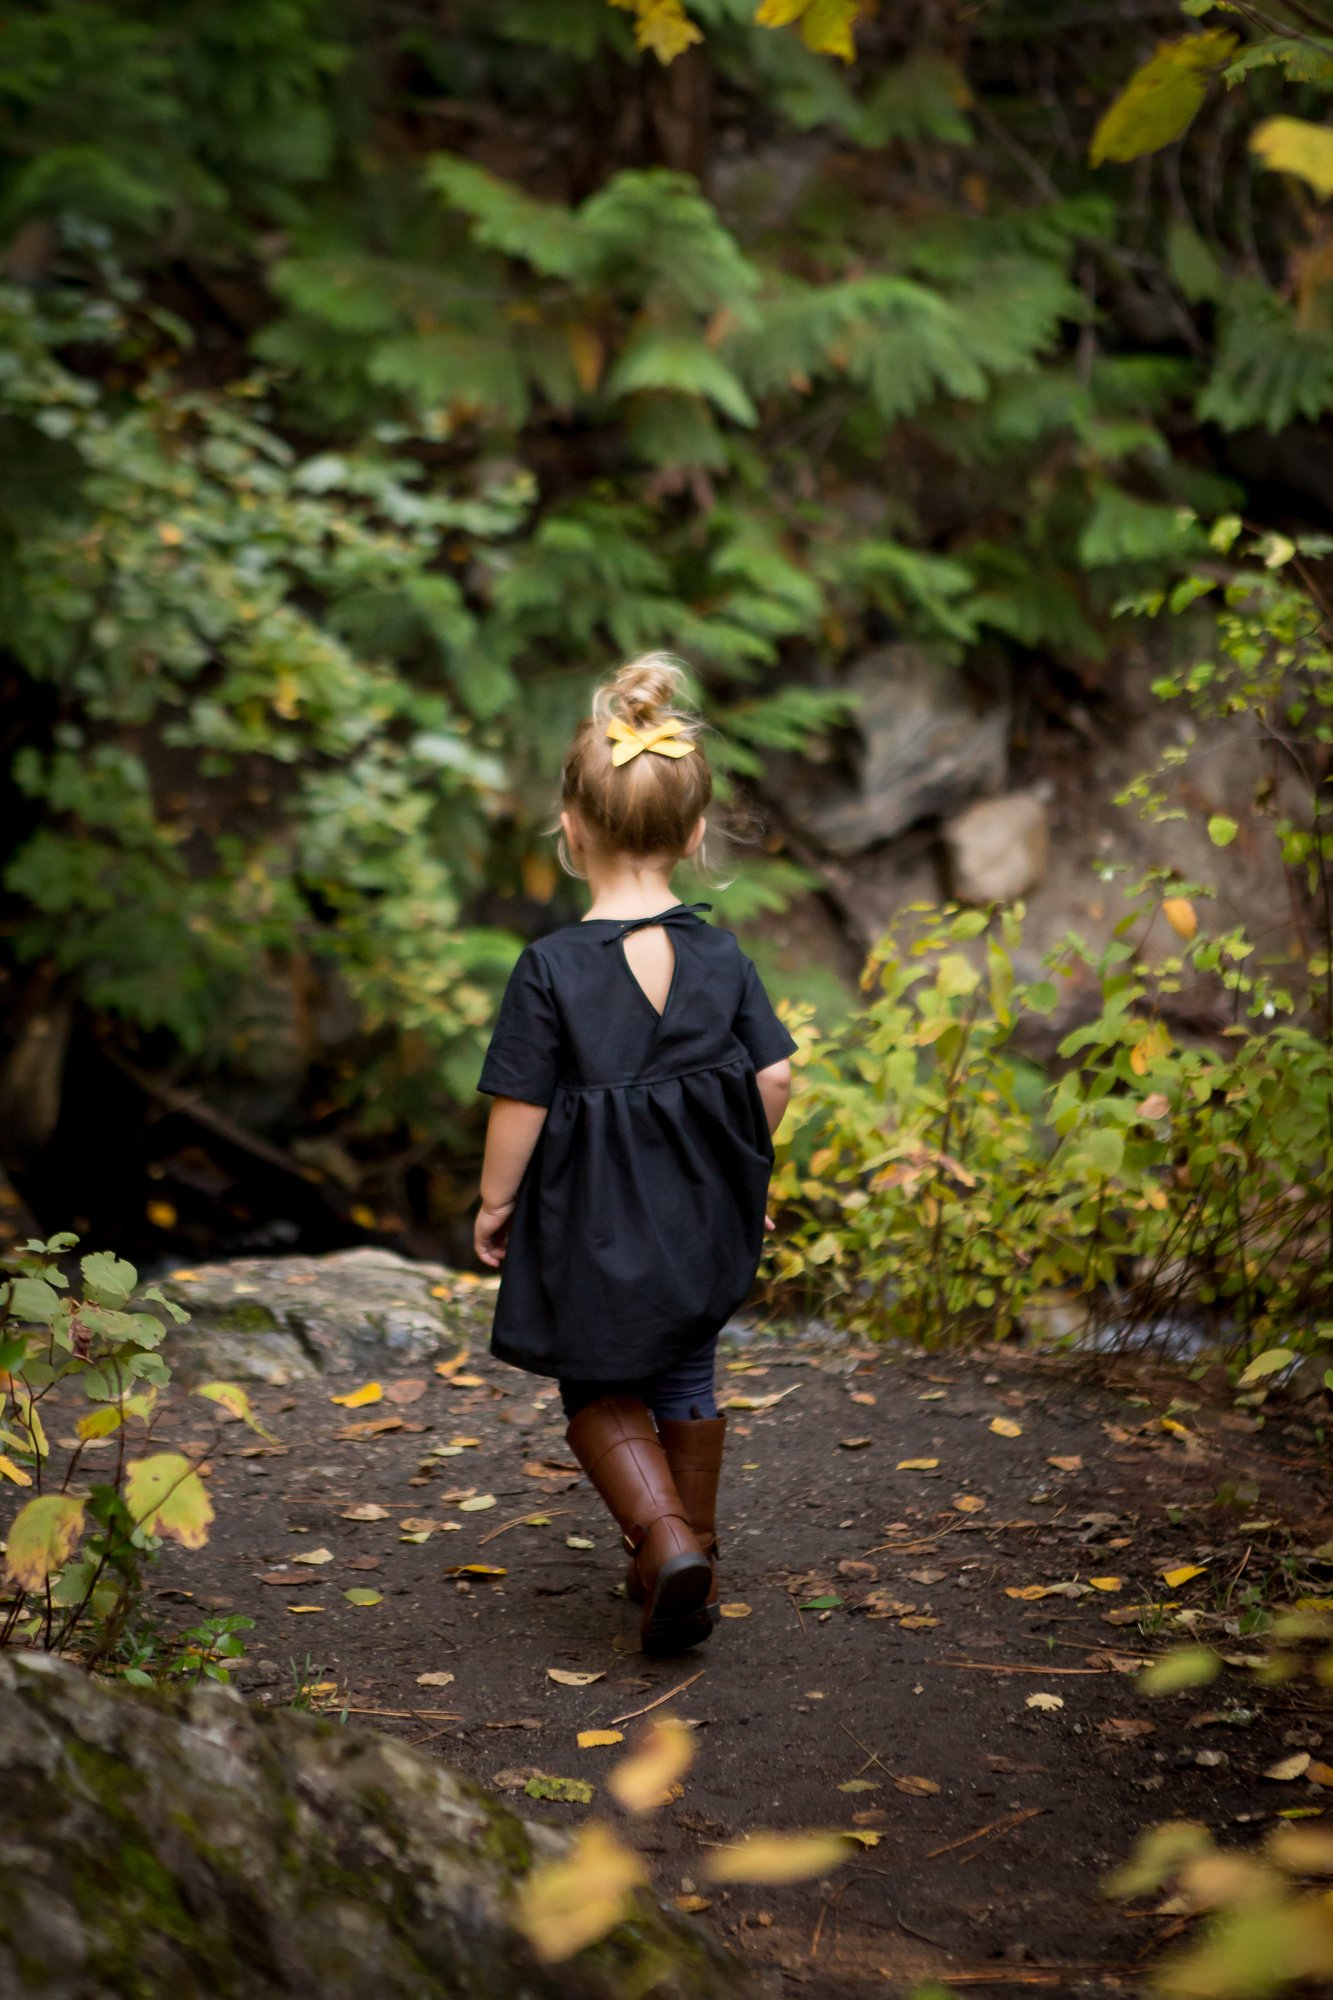 A little girl walking in the forest